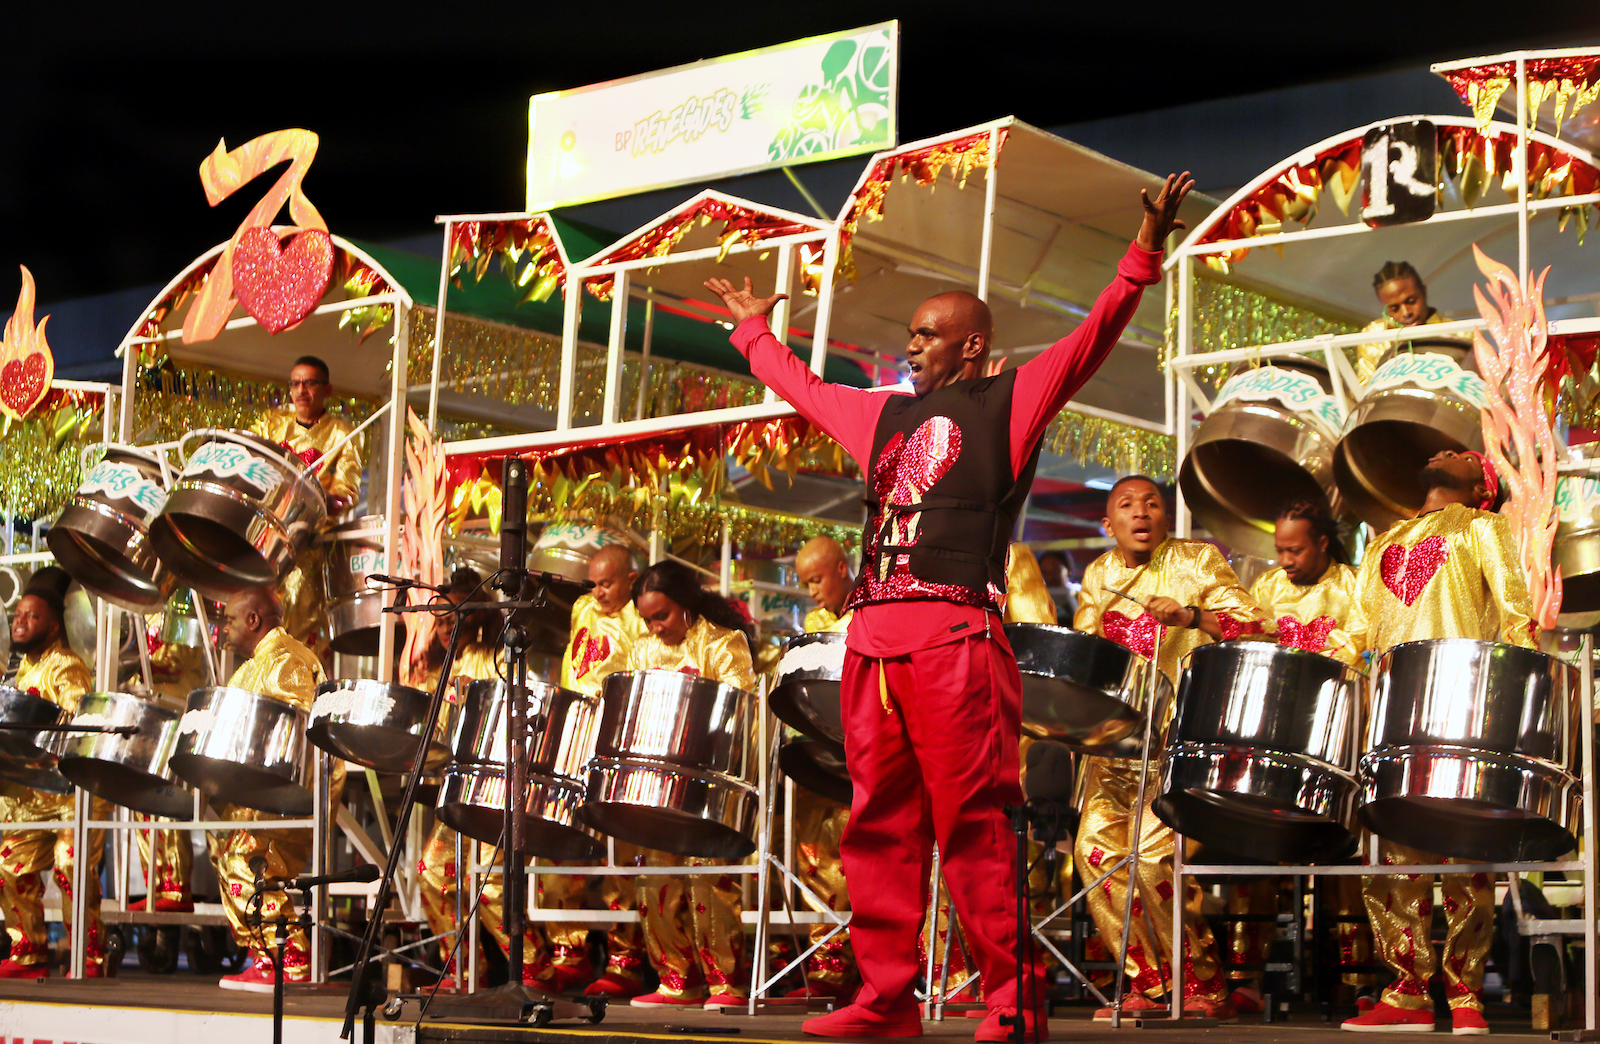 Duvone Stewart bp renegades arranger took his large band to victory PHOTO BY AZLAN MOHAMMED sATURDAY10 fEBRUARY, 2018